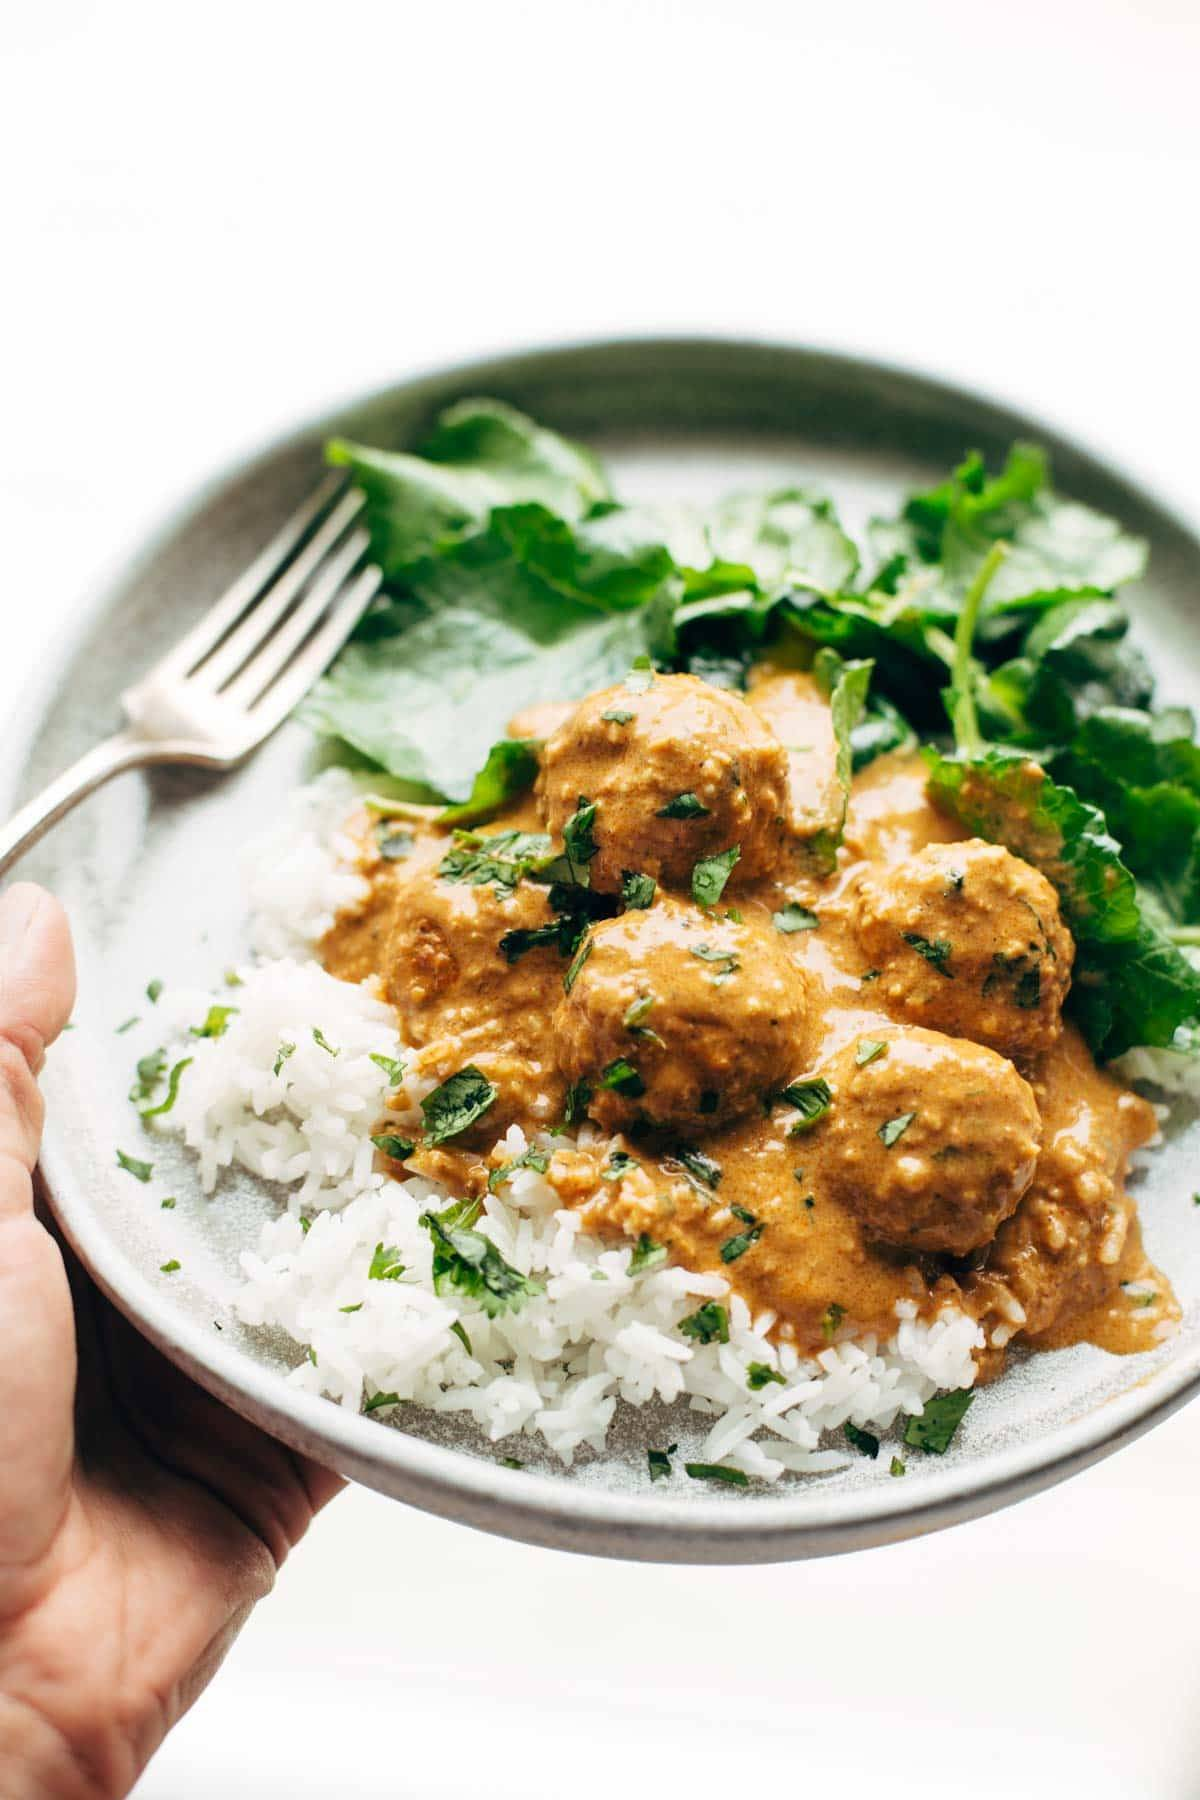 White hand holding a plate with cauliflower vegetarian meatballs, white rice, and fresh herbs sprinkled on top. There is a fork on the plate with greens.